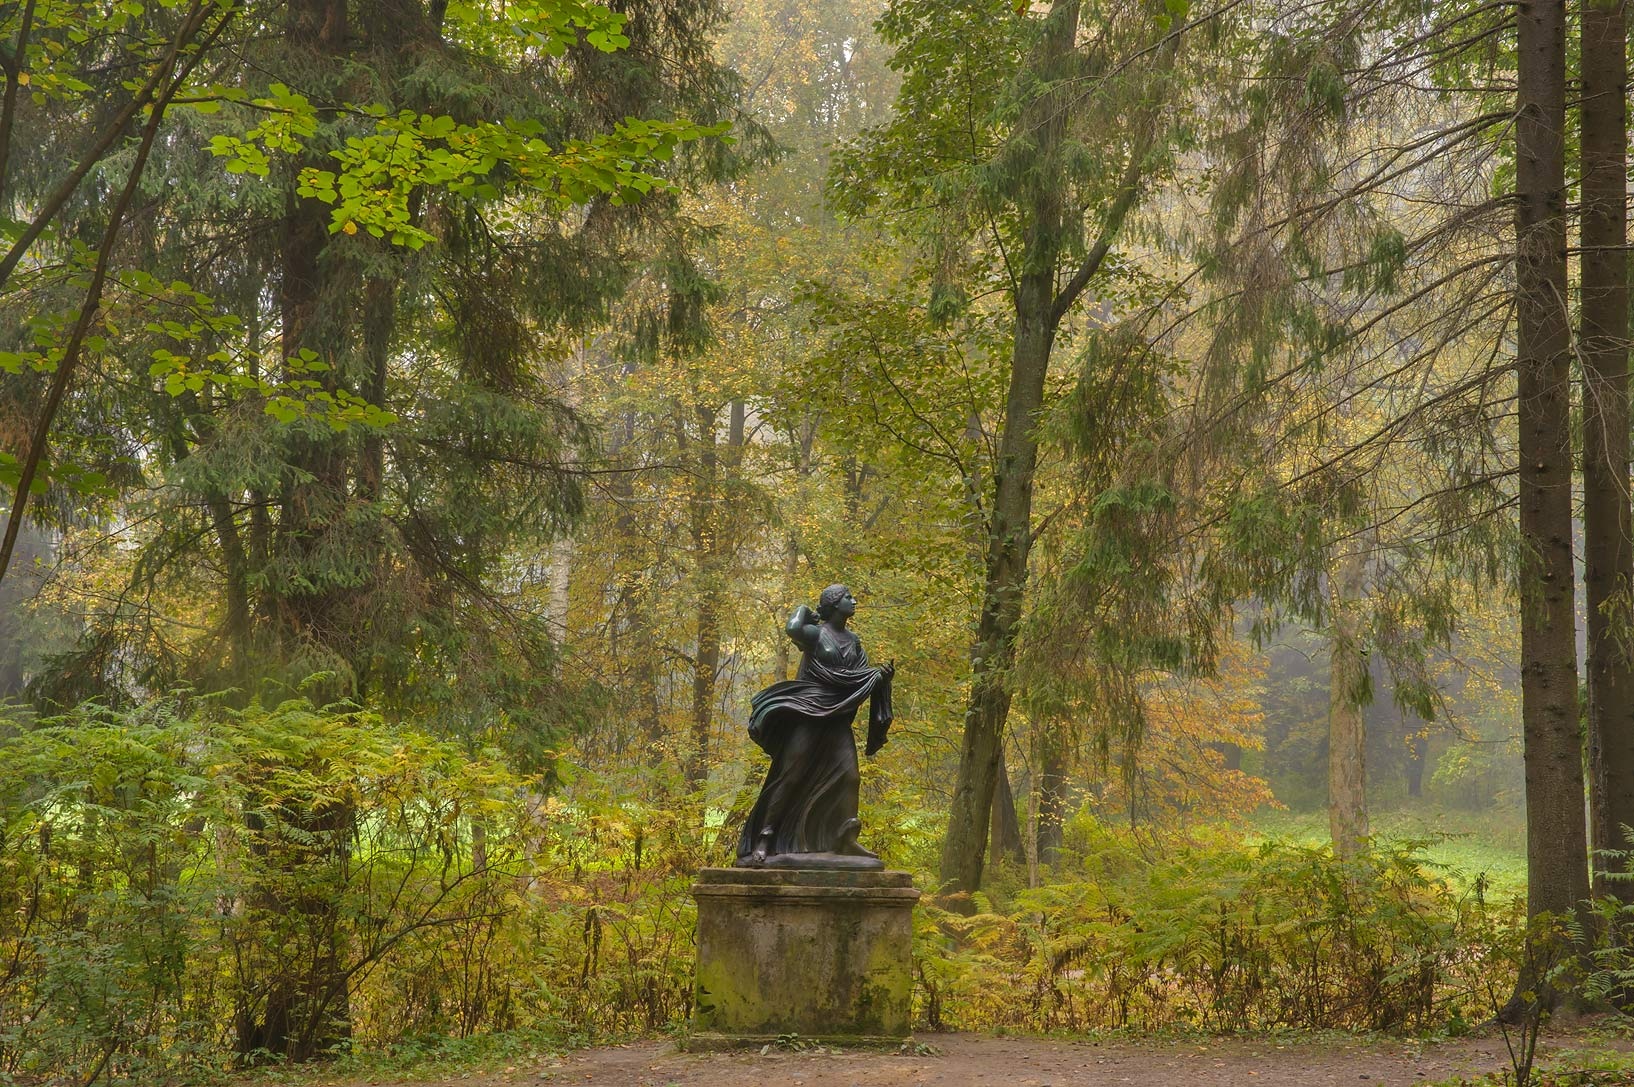 Statue of 9-th Parade Alley in Pavlovsk Park in...a suburb of St.Petersburg. Russia